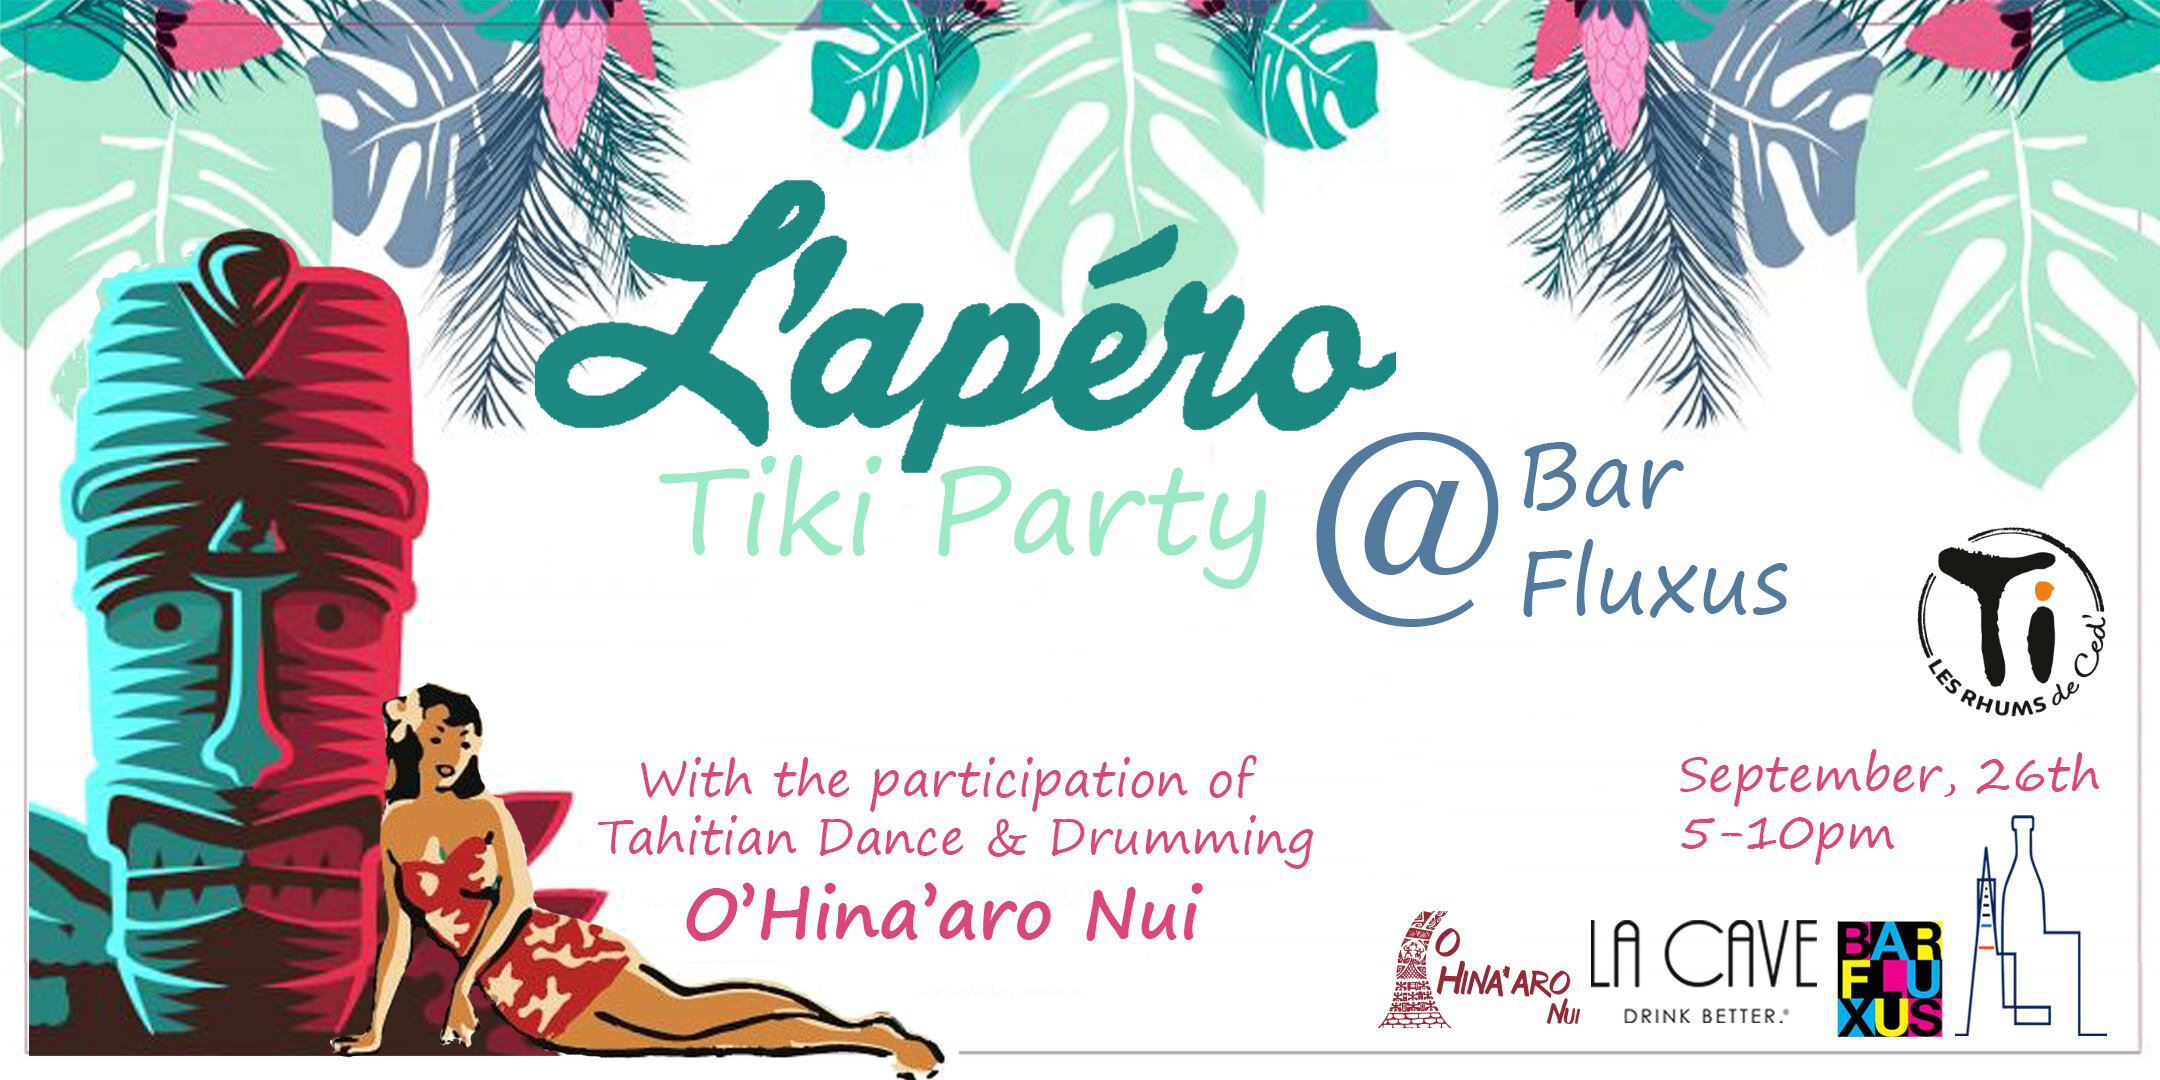 L'Apéro Tiki Party - Thursday, September 26, 2019 - 5pm - 7pm at Bar Fluxus, 18 Harlan Pl, SFIsland vibe in the city with Tahitian Dance & Drumming by O'Hina'aro Nui + Tahitian Beer Hinano + Ced's Rum Liqueur from La Cave!In the heart of the city, Bar Fluxus is where the party's at - enjoy special pricing on cocktails, shots and beer for happy hour:$8 shots // $6 glass of house wine // a dollar off on the draft beers // Tiki cocktailsFeaturing Ced's Victoria Pineapple Rum Liqueur